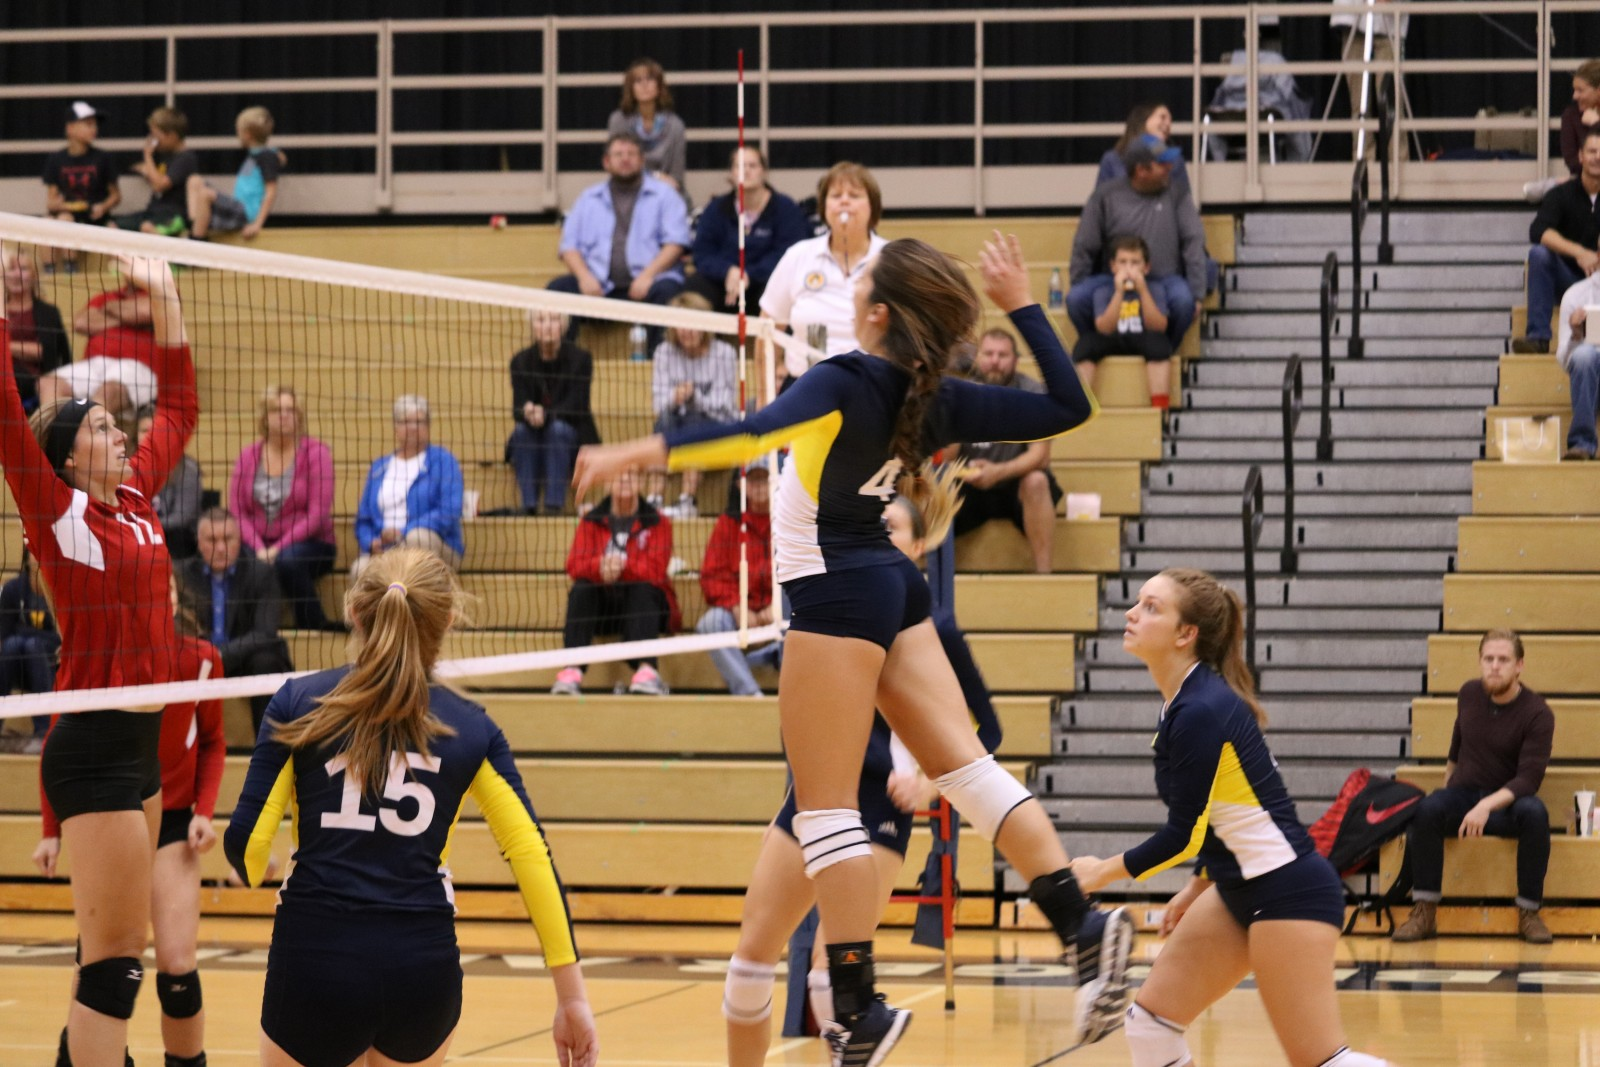 Sophomore Outside Hitter, #4, Lauren Weiber jumping to spike the ball for a kill versus Lake Michigan College on Sept. 27.